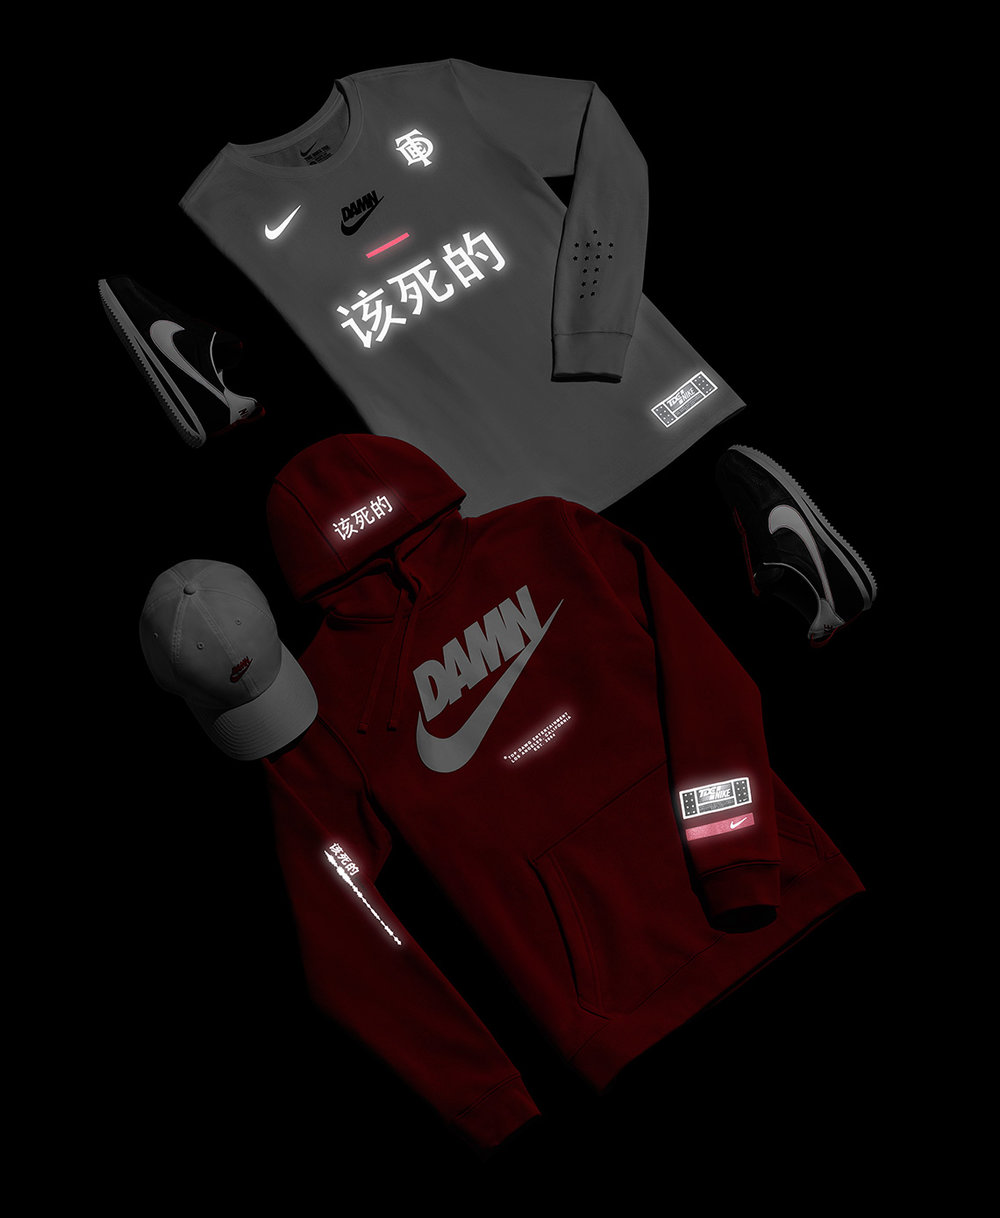 nike-top-dawg-entertainment-cortez-kenny-1-the-championship-tour-release-info-6.jpg